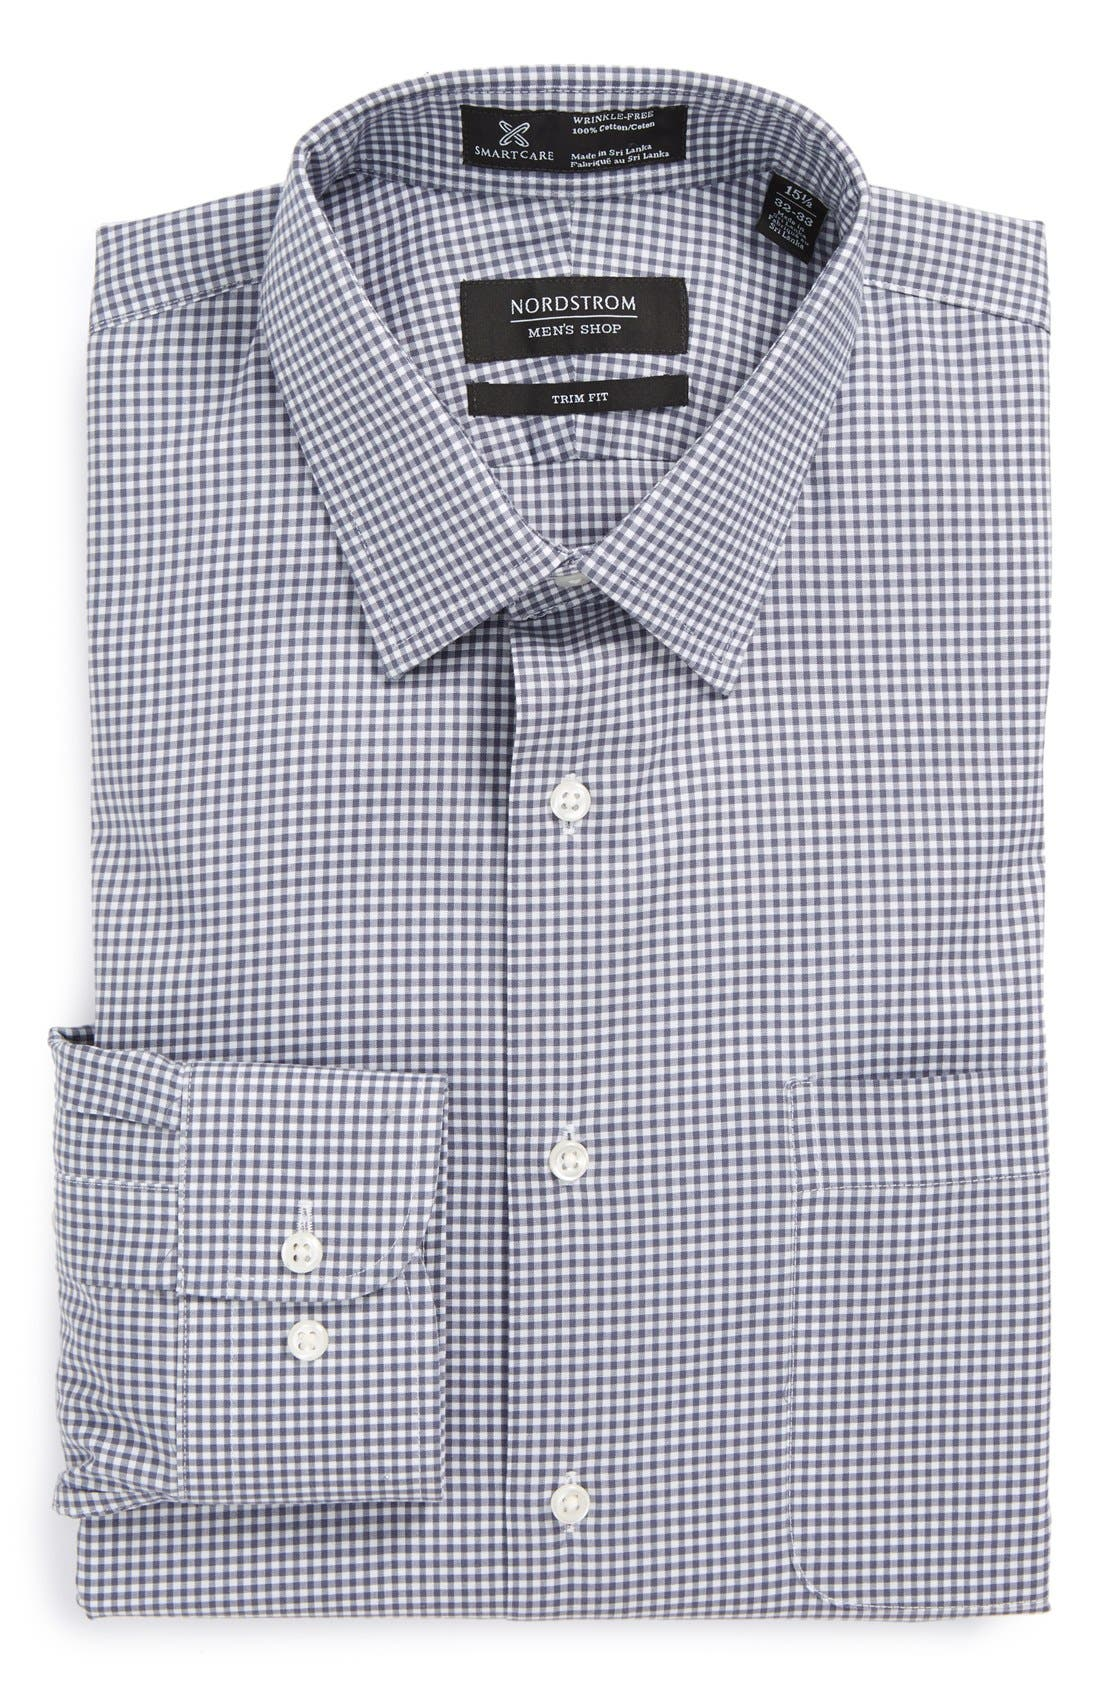 Main Image - Nordstrom Men's Shop Smartcare™ Wrinkle Free Trim Fit Gingham Dress Shirt